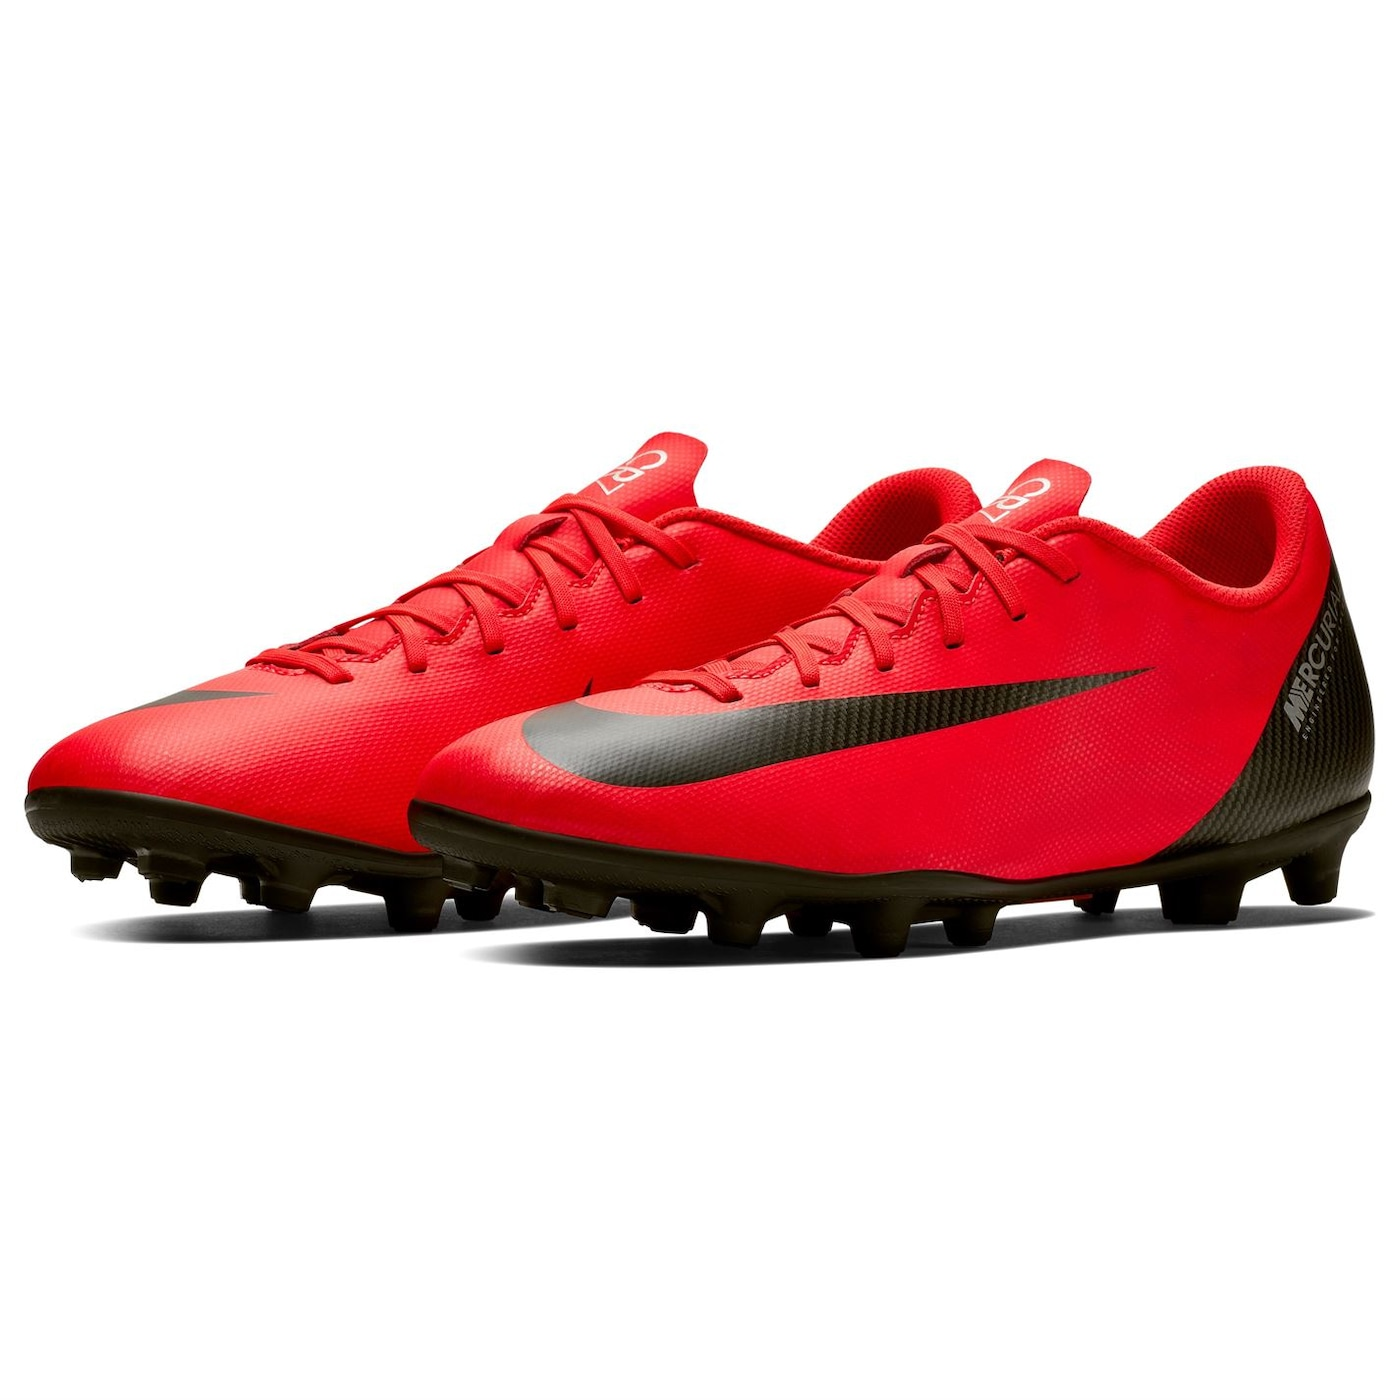 Nike Mercurial Vapor Club CR7 Mens FG Football Boots